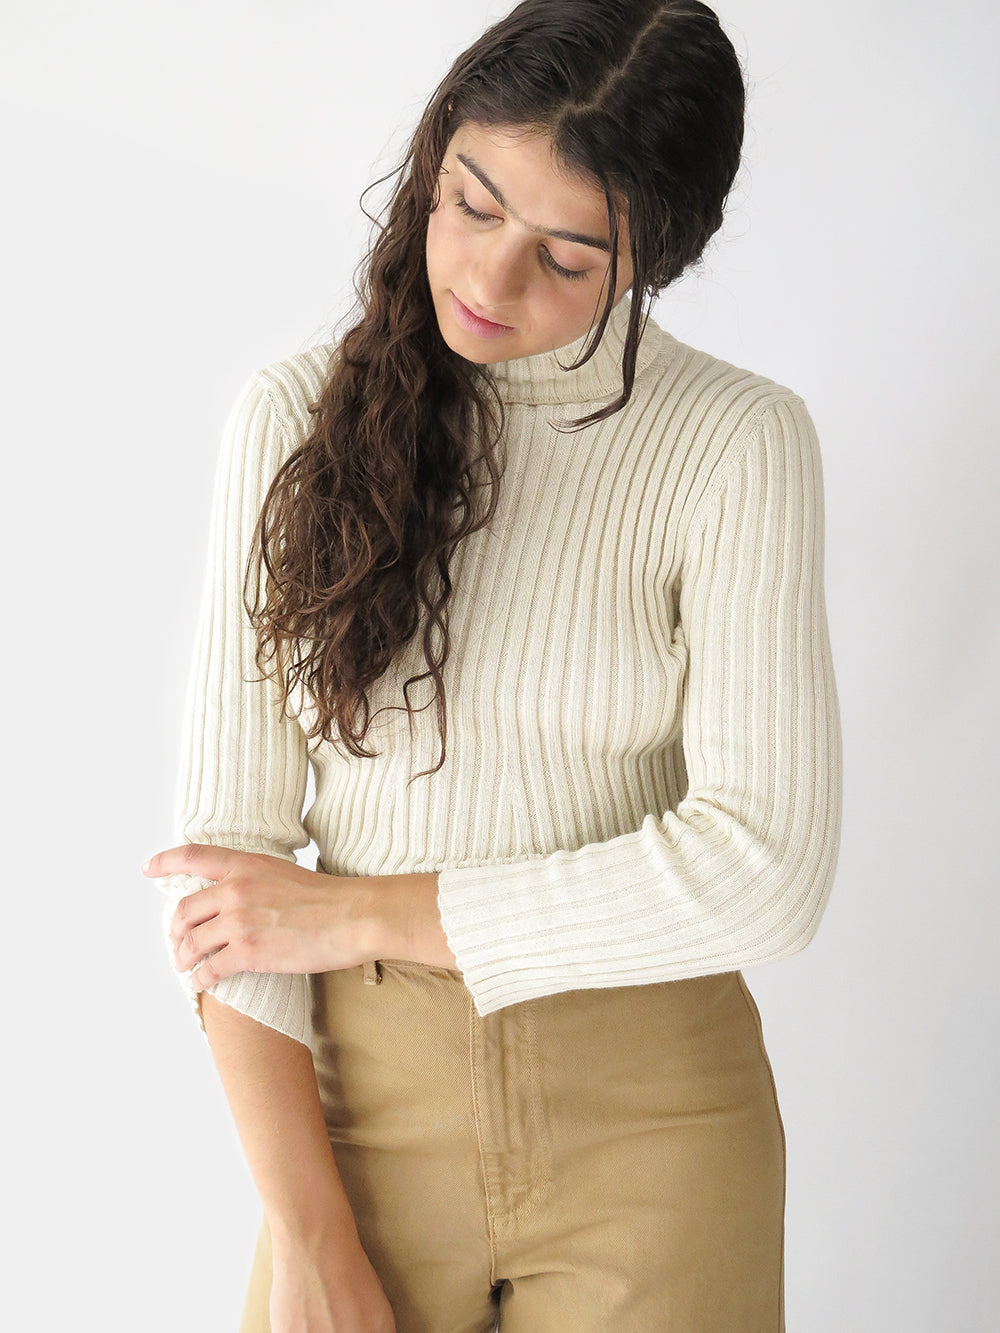 shaina mote isla turtleneck in cream